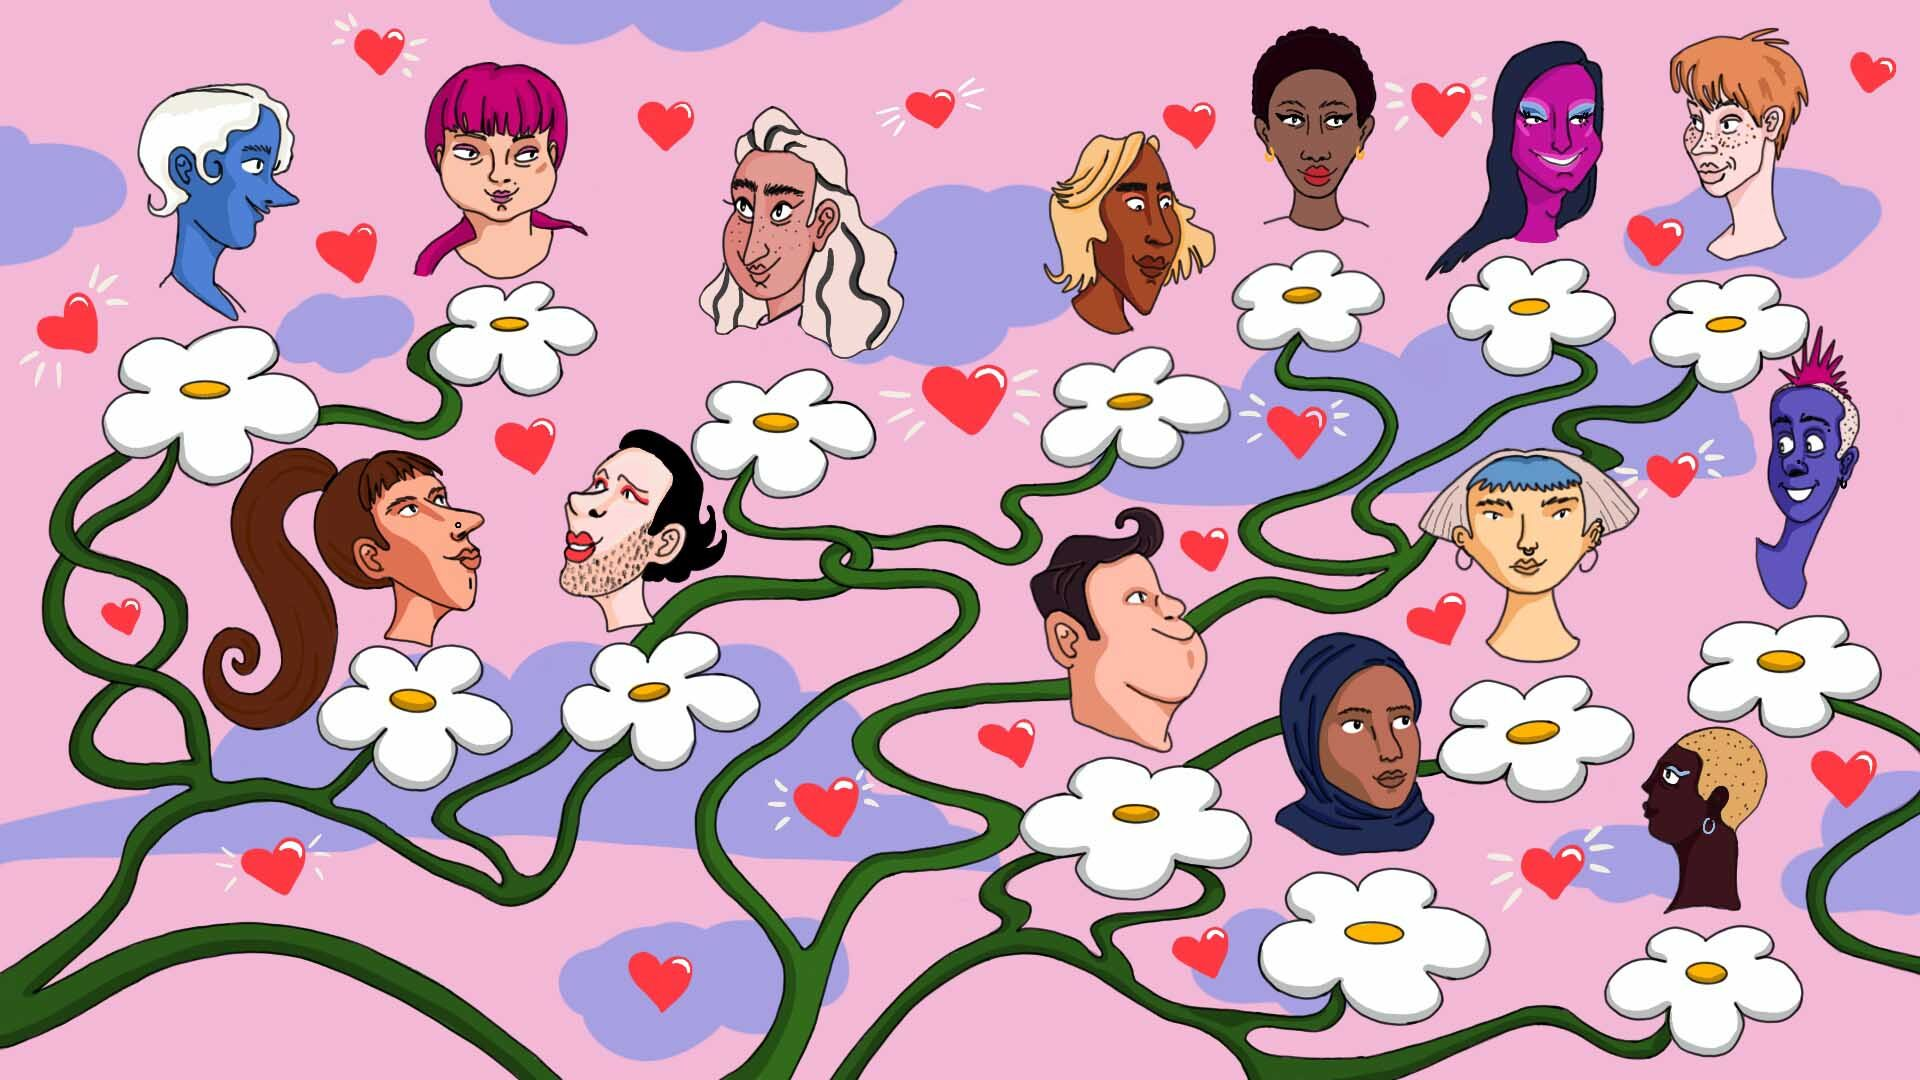 a drawing of a tree branch from which different heads grow, each head is a person surronded by tiny hearts, implying they all love one another